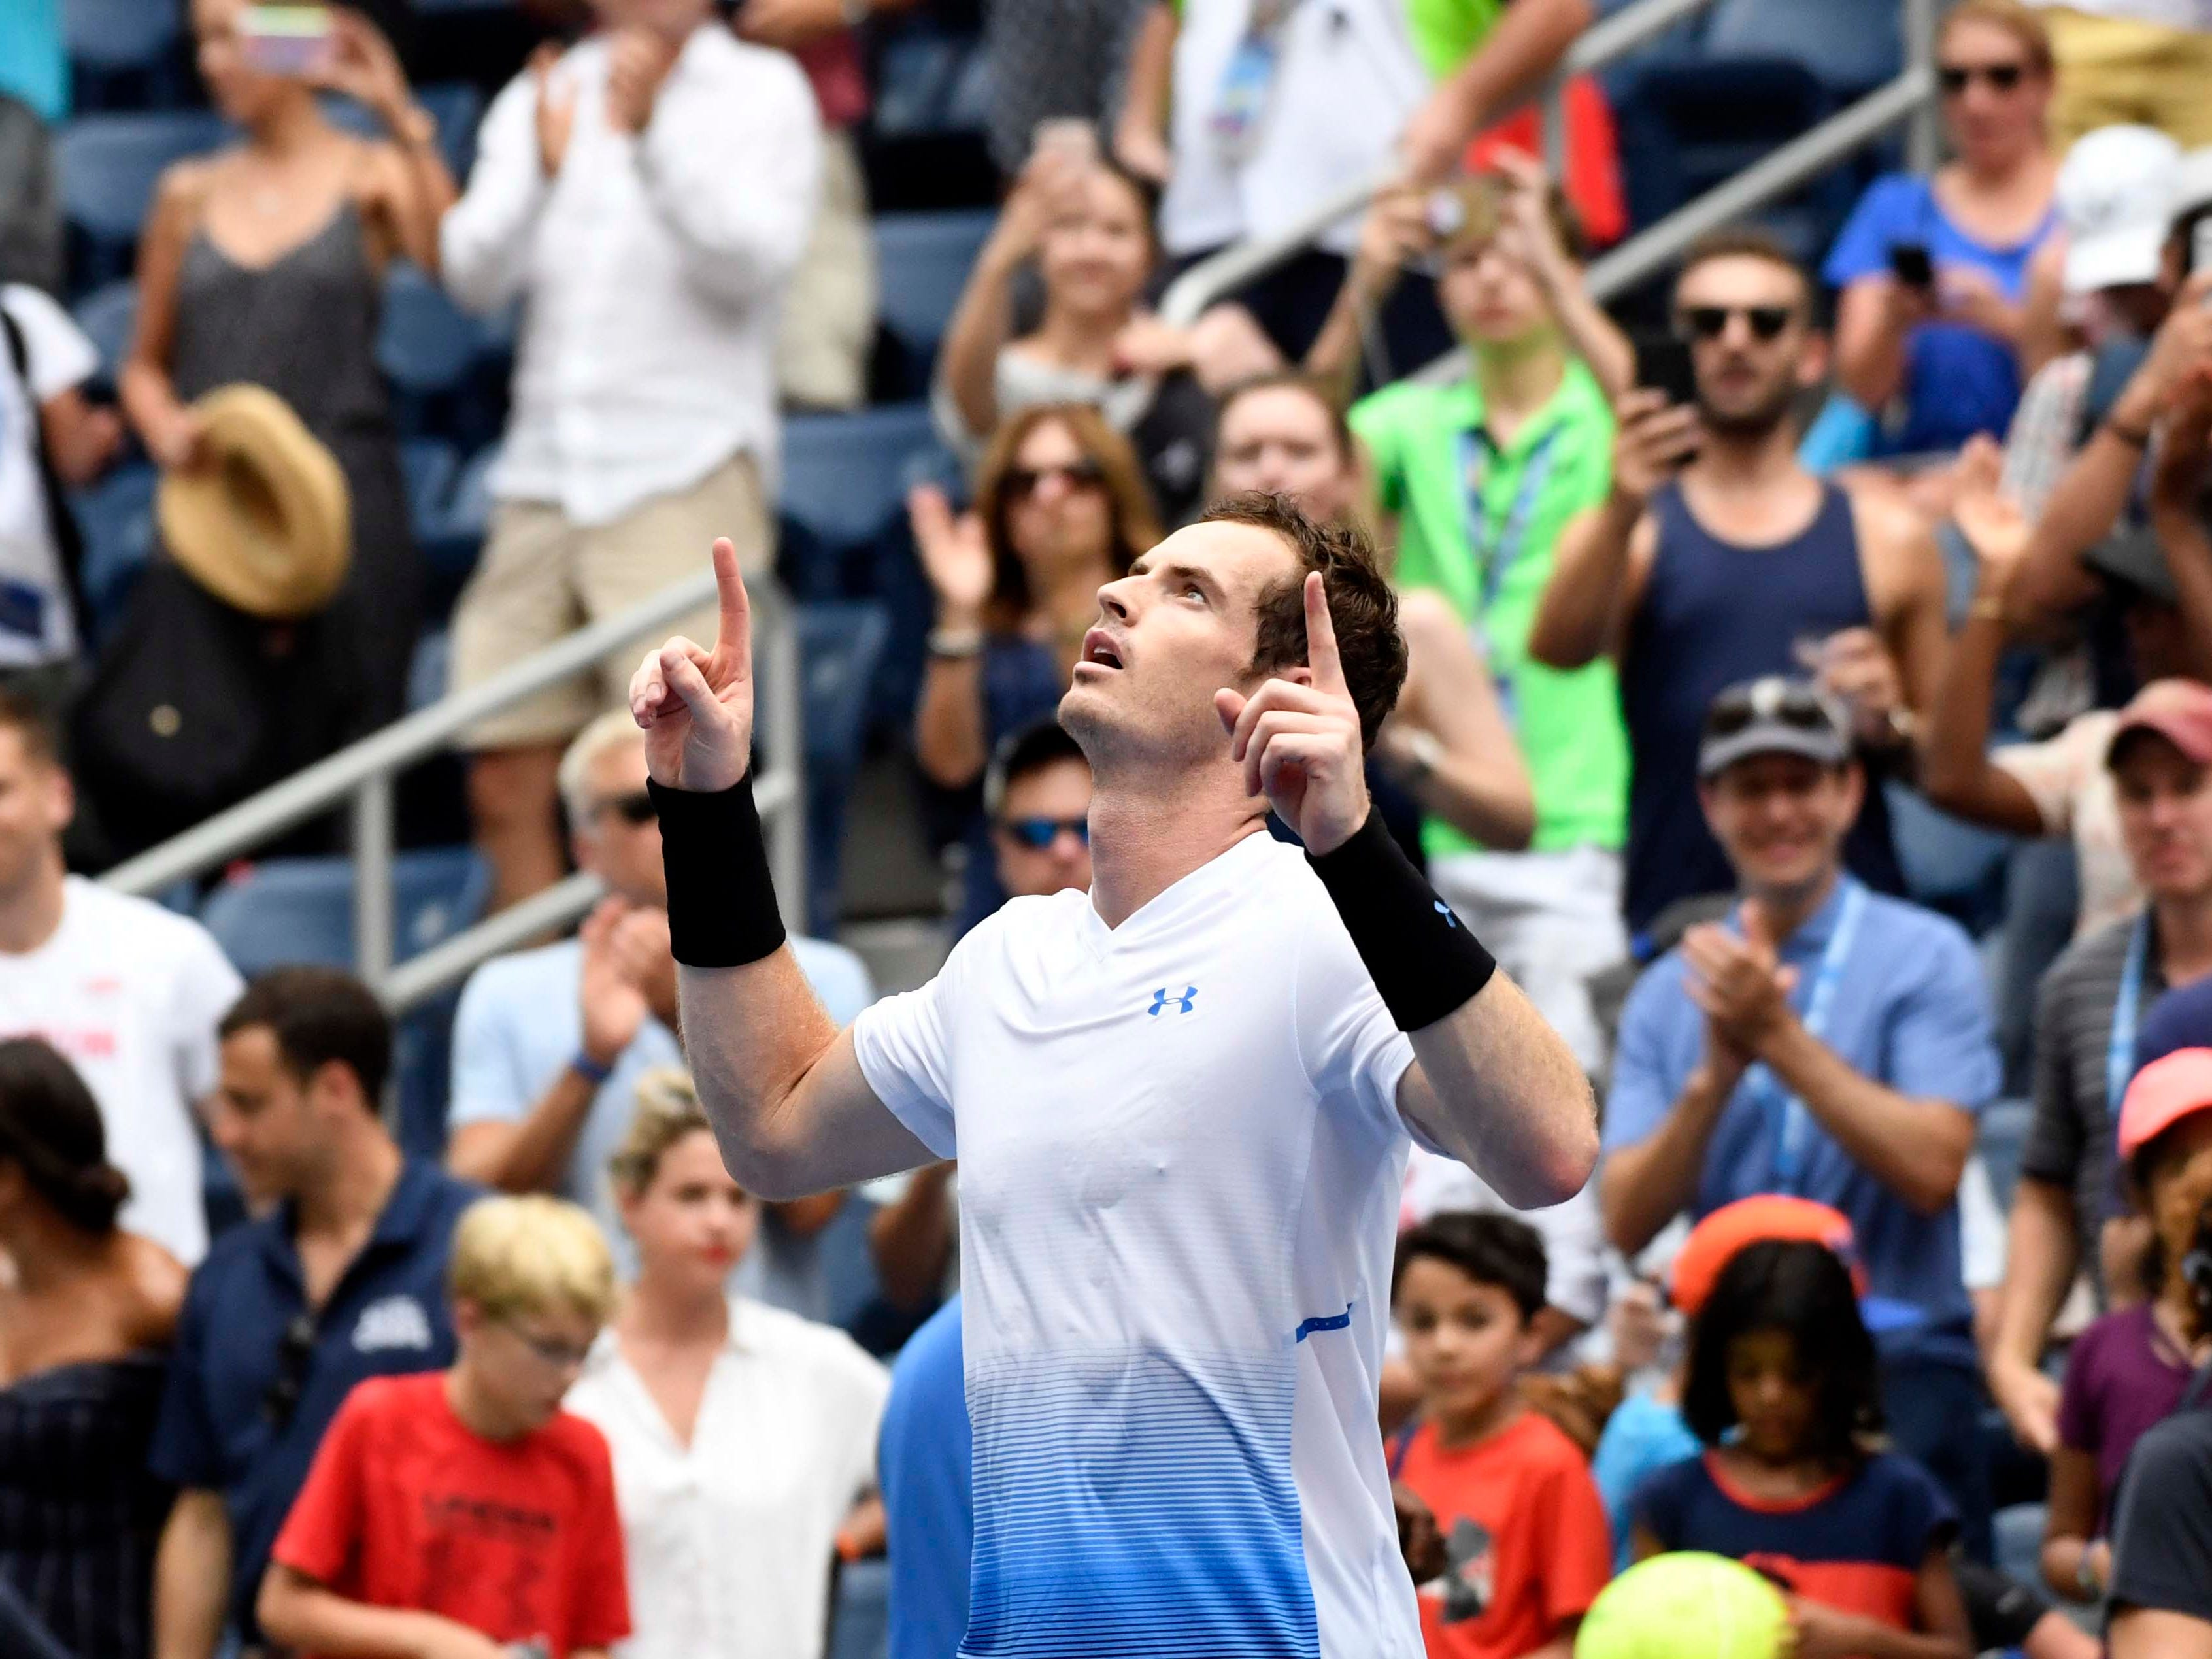 Andy Murray of Great Britain was a winner on Day 1, 6-7, 6-3, 7-5, 6-3 against ames Duckworth of Australia.